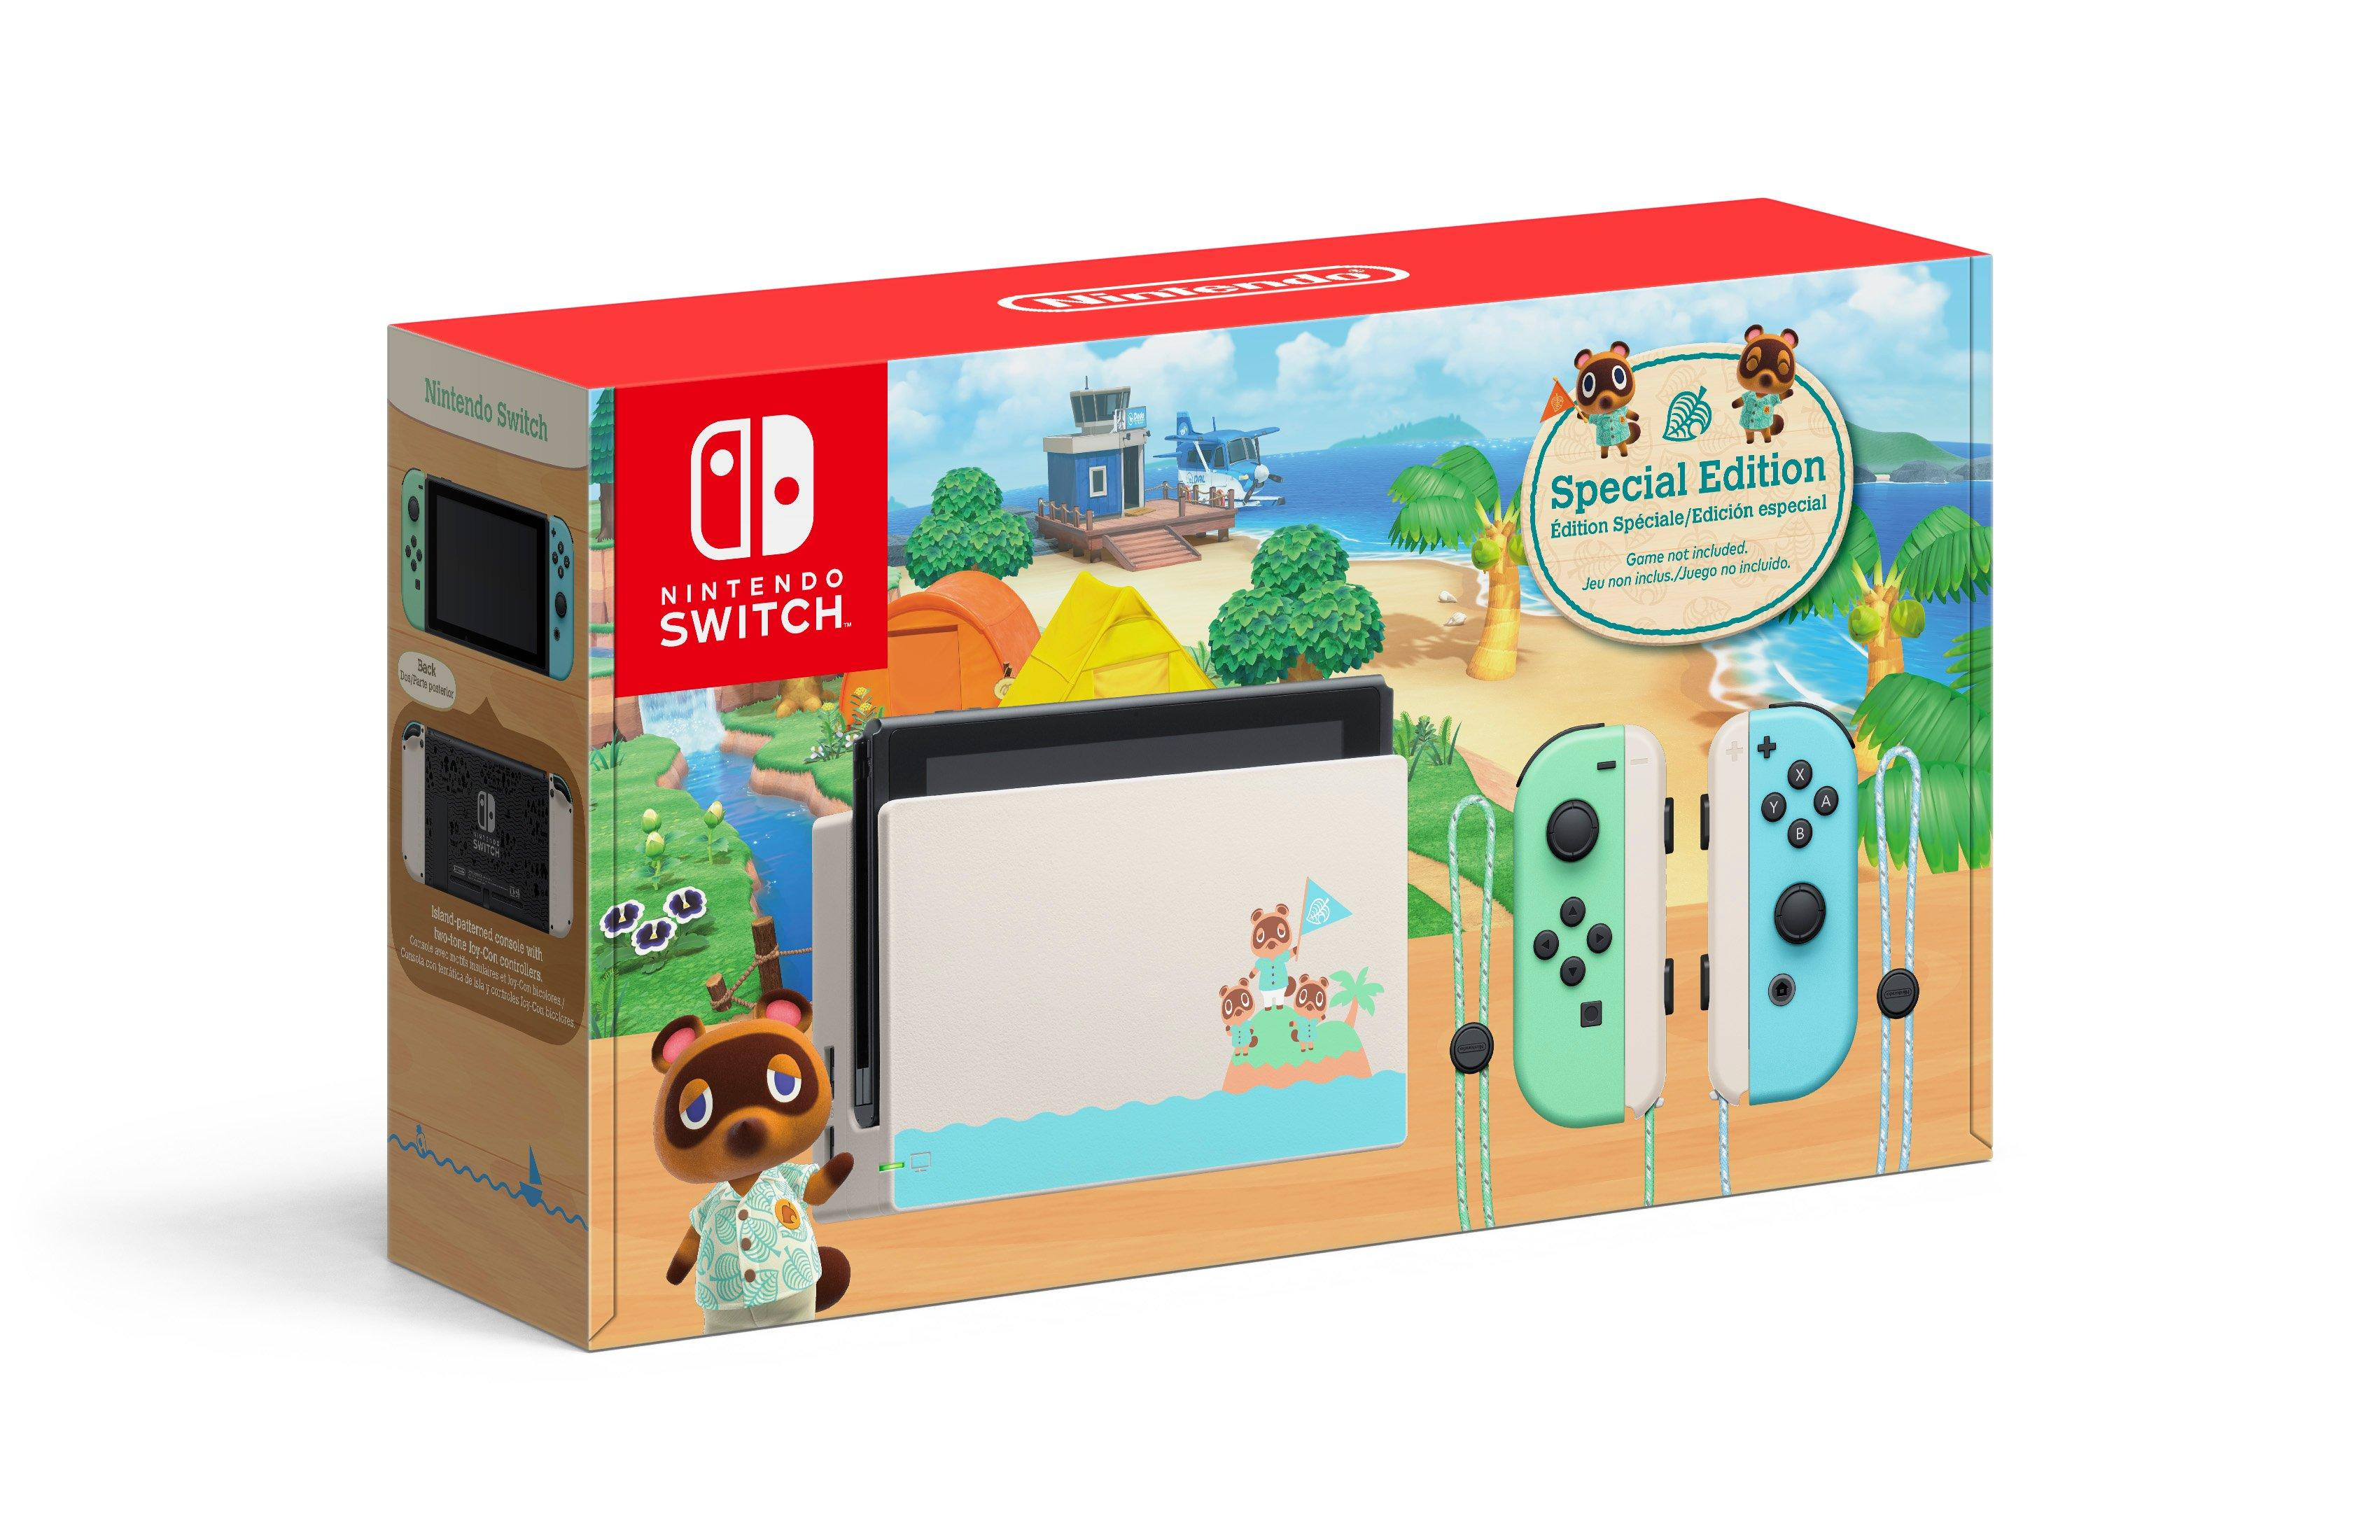 Nintendo Switch Animal Crossing New Horizons Edition Nintendo Switch Gamestop